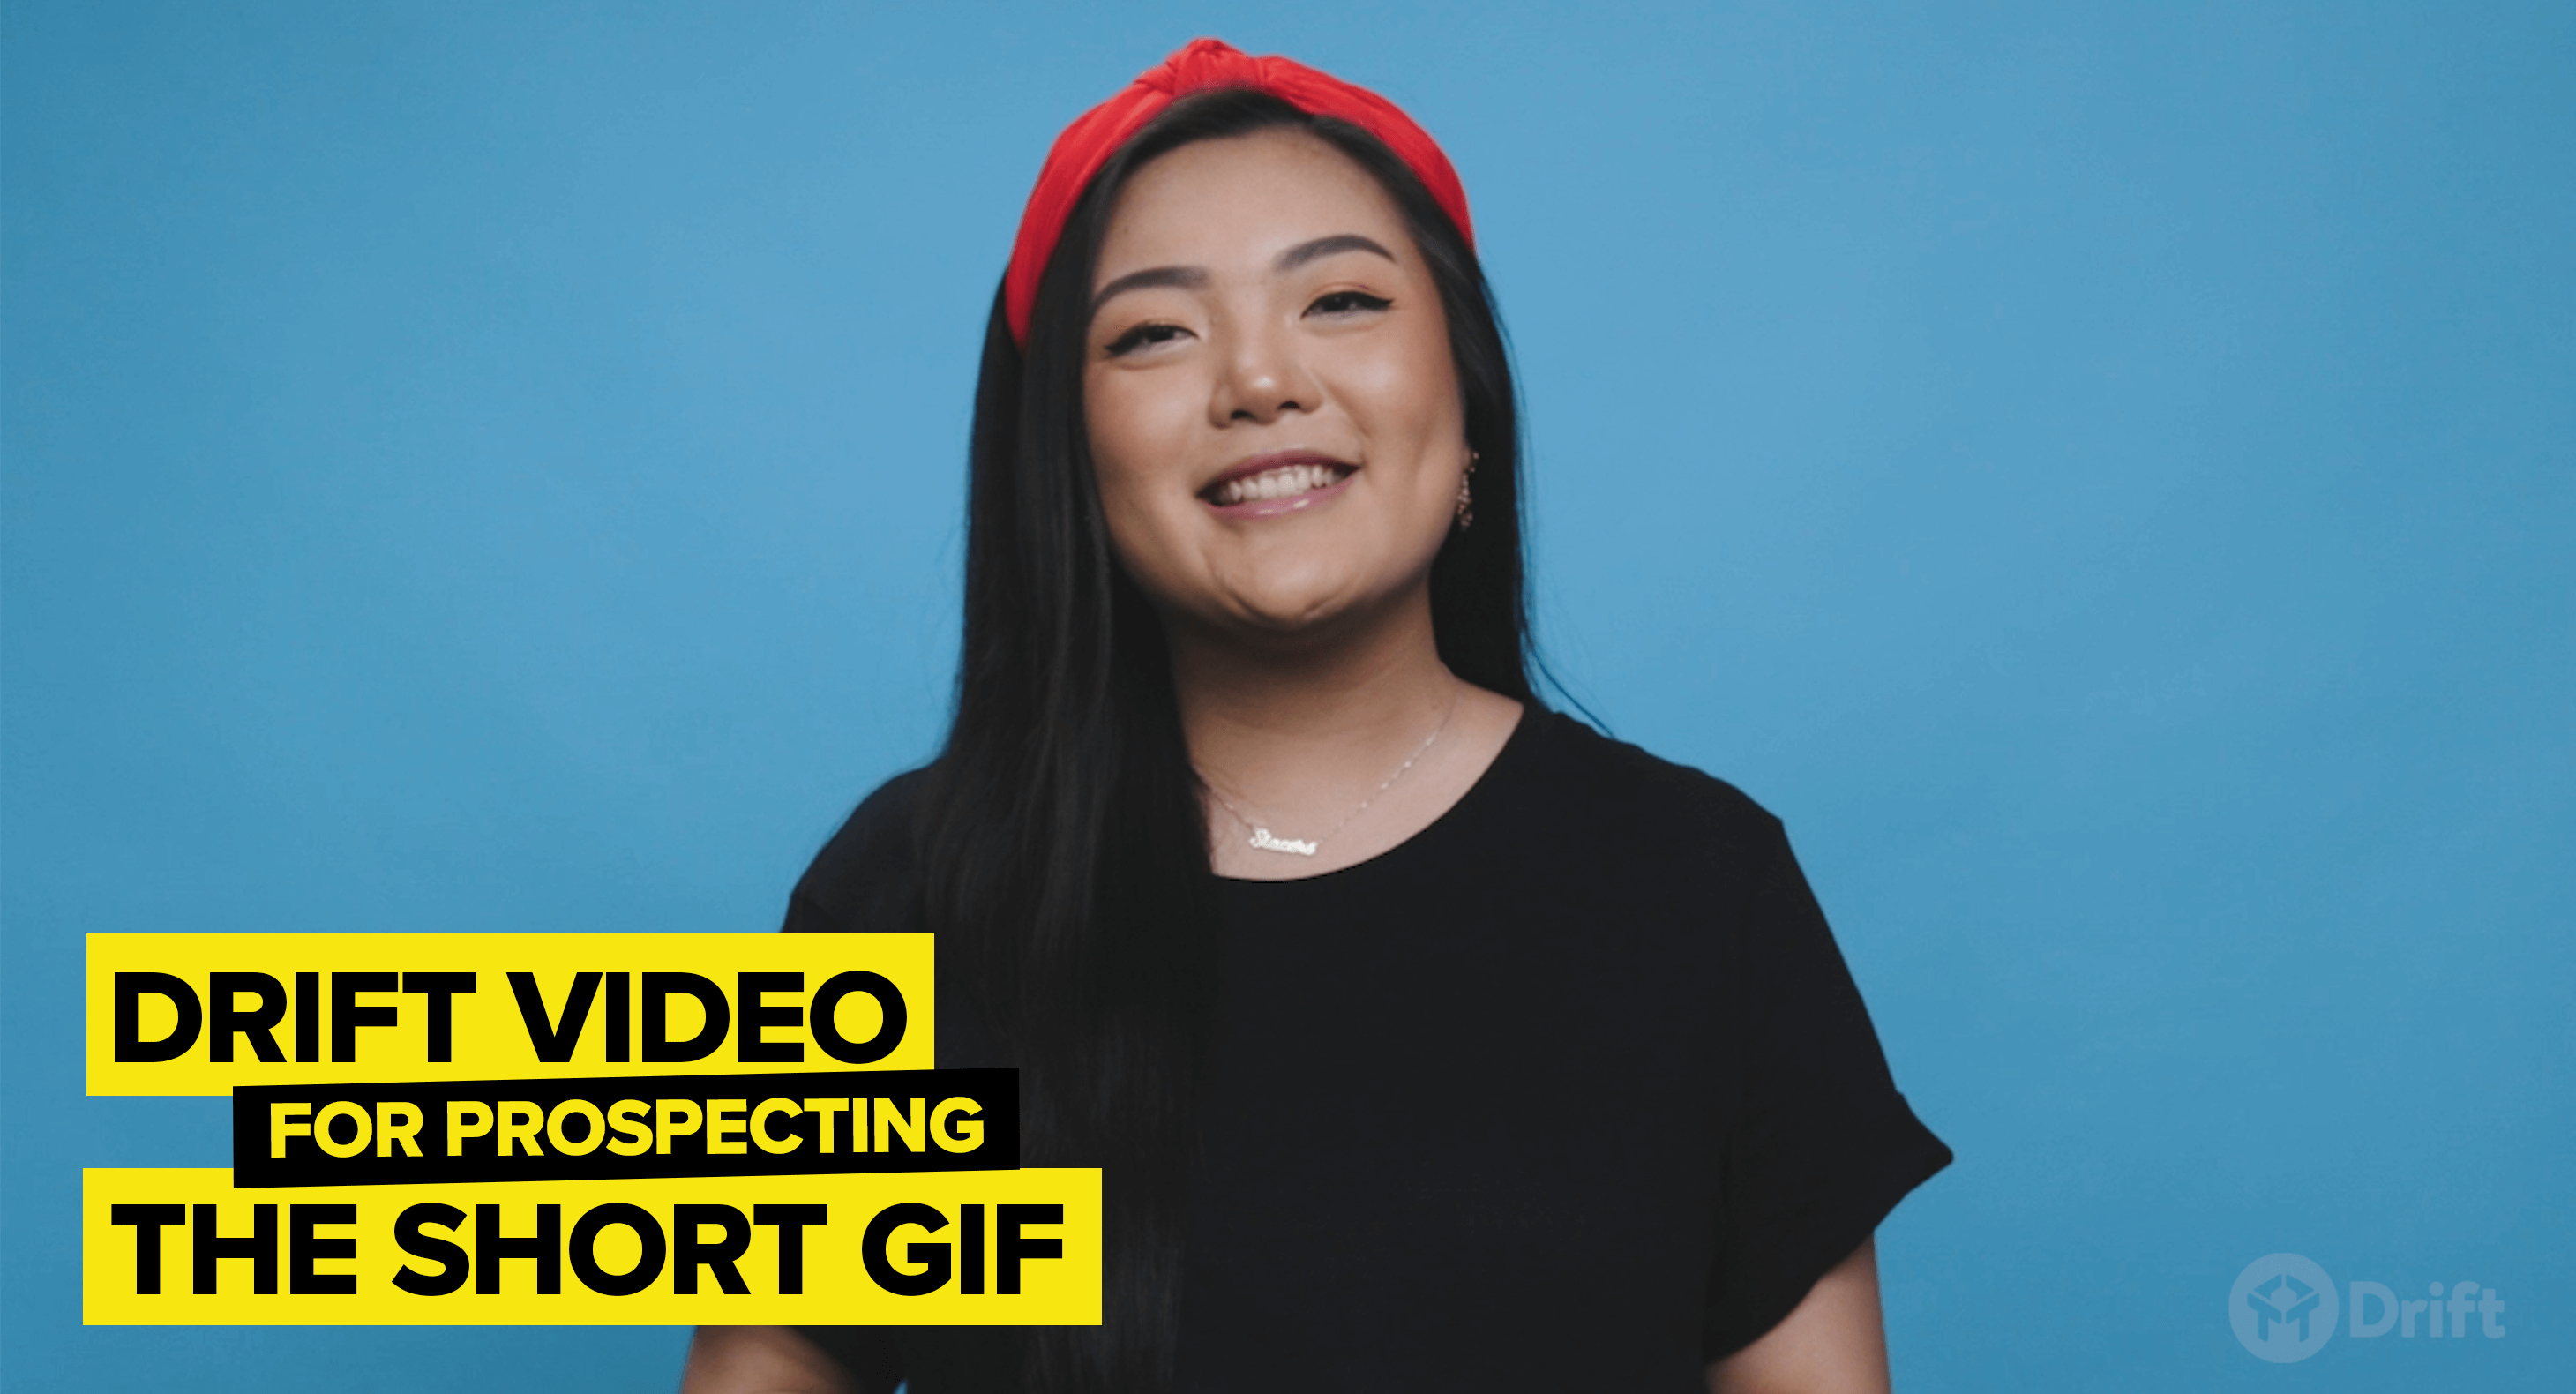 Use Drift Video for sales prospecting